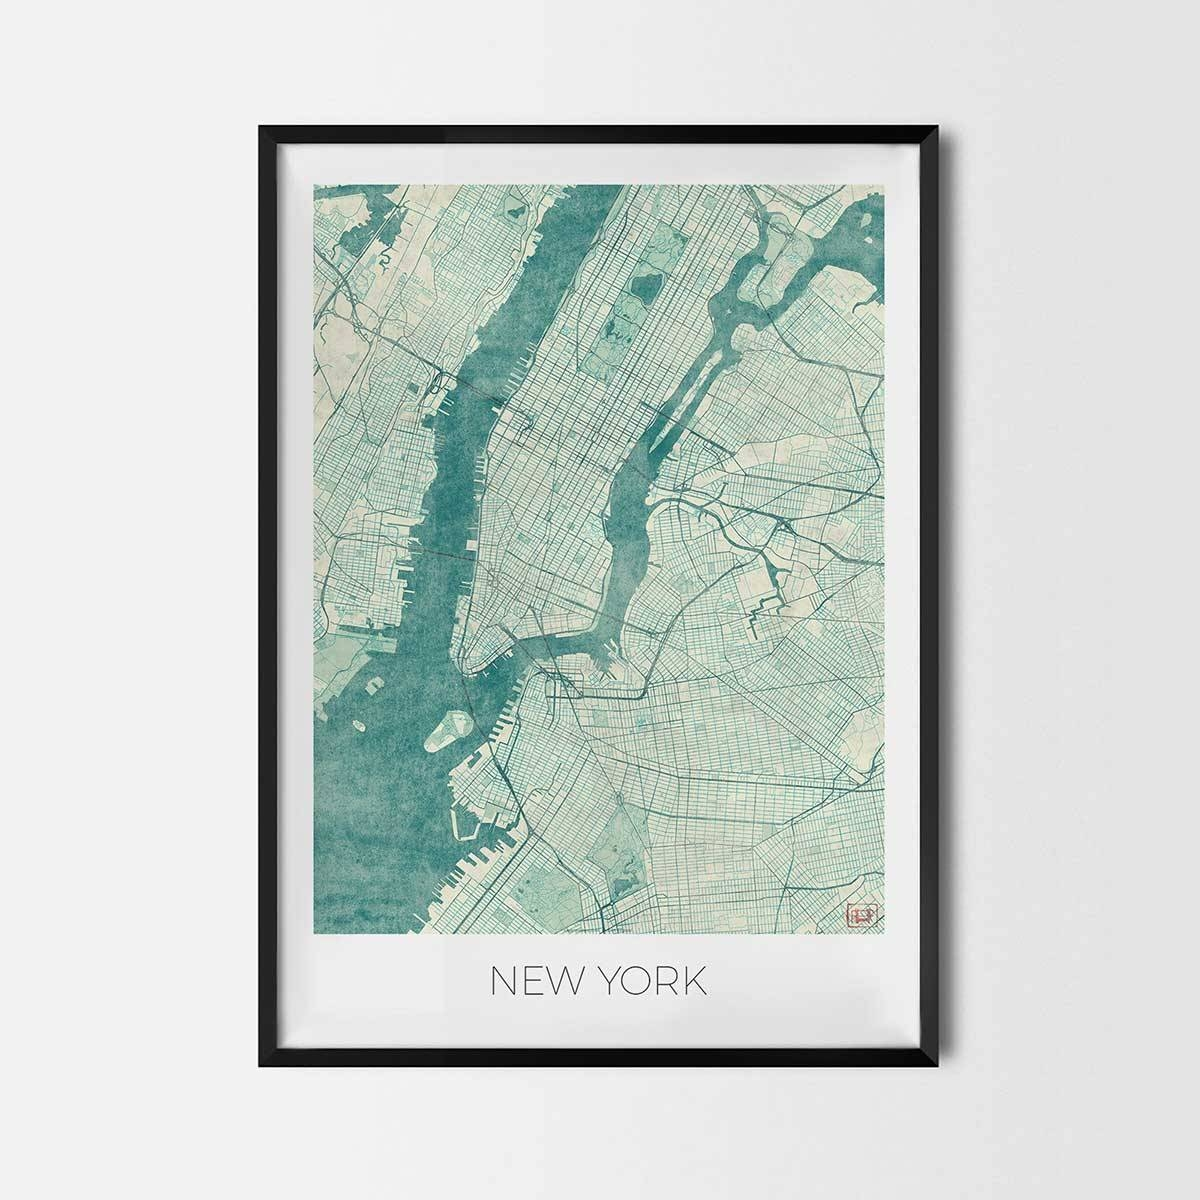 City Art Posters | Map Posters And Art Prints – Gifts For City In 2017 City Prints Map Wall Art (View 4 of 20)